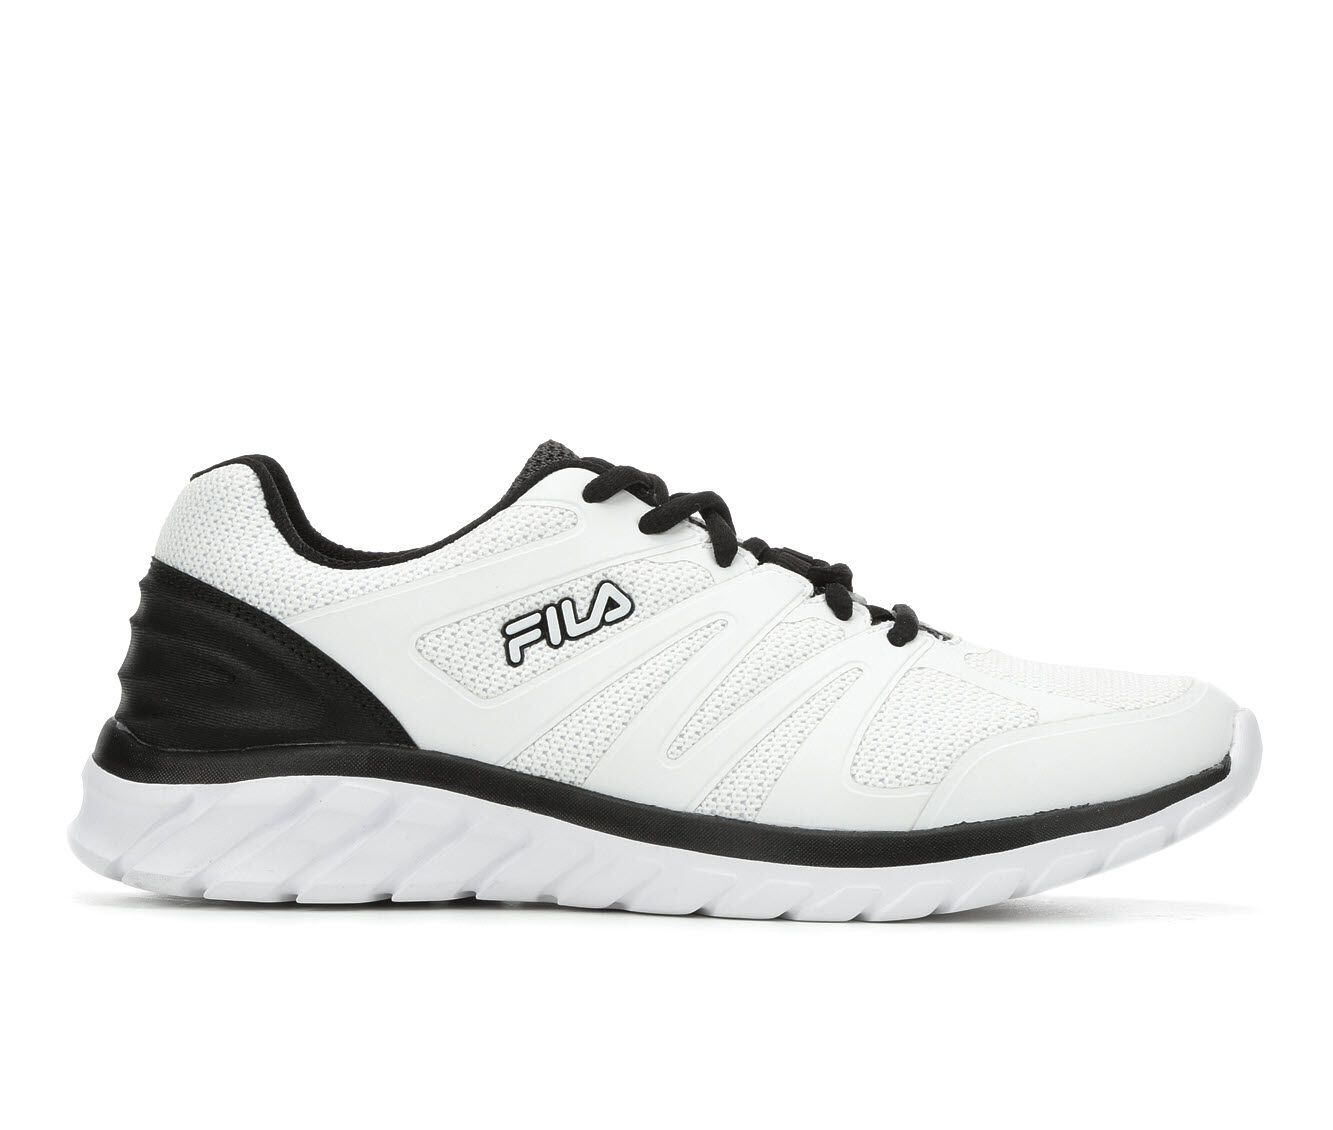 Men's Fila Memory Cryptonic 3 Running Shoes White/Black